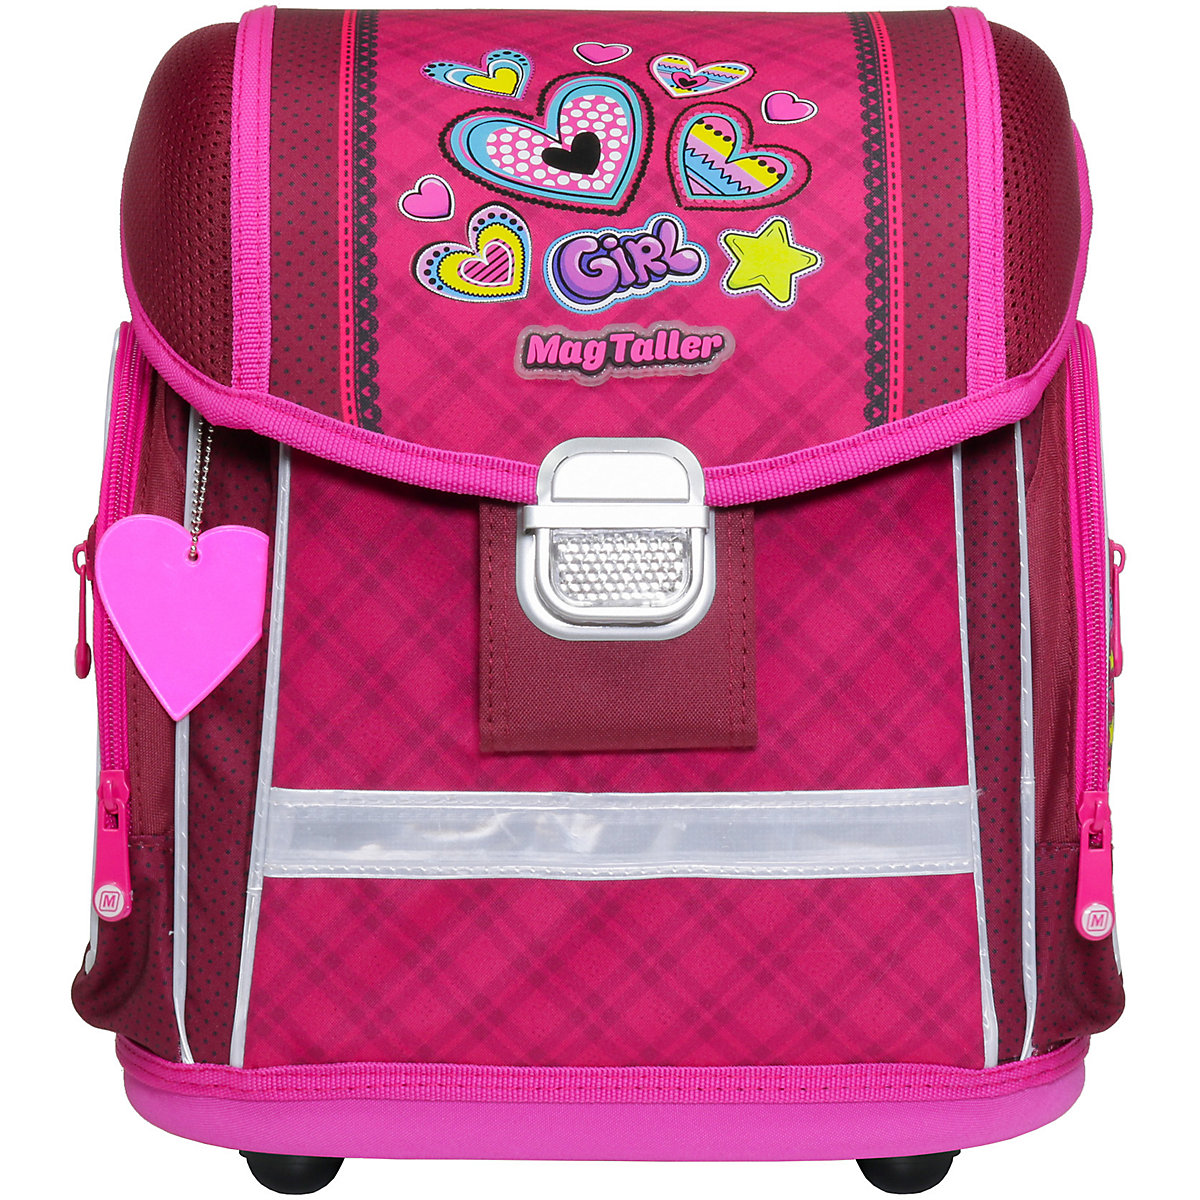 School Bags MAGTALLER 11154978 schoolbag backpack knapsacks orthopedic bag for boy and girl animals flower sprints school bags magtaller 11154976 schoolbag backpack knapsacks orthopedic bag for boy and girl animals flower sprints